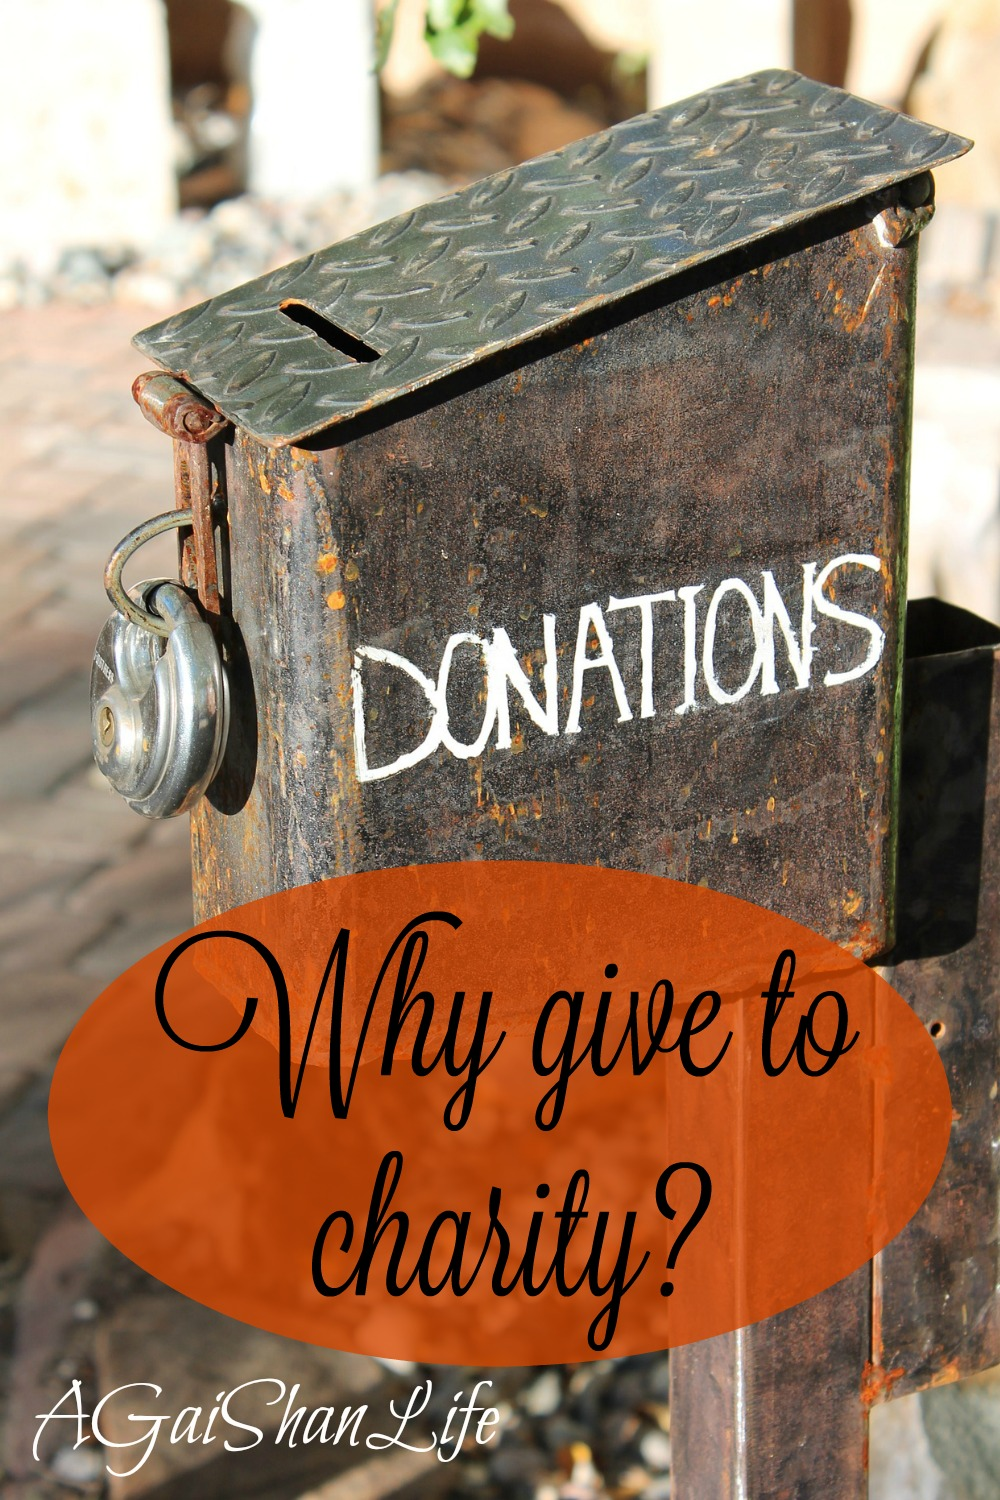 Charity: Why I think it's important to give, even if you can only give a little